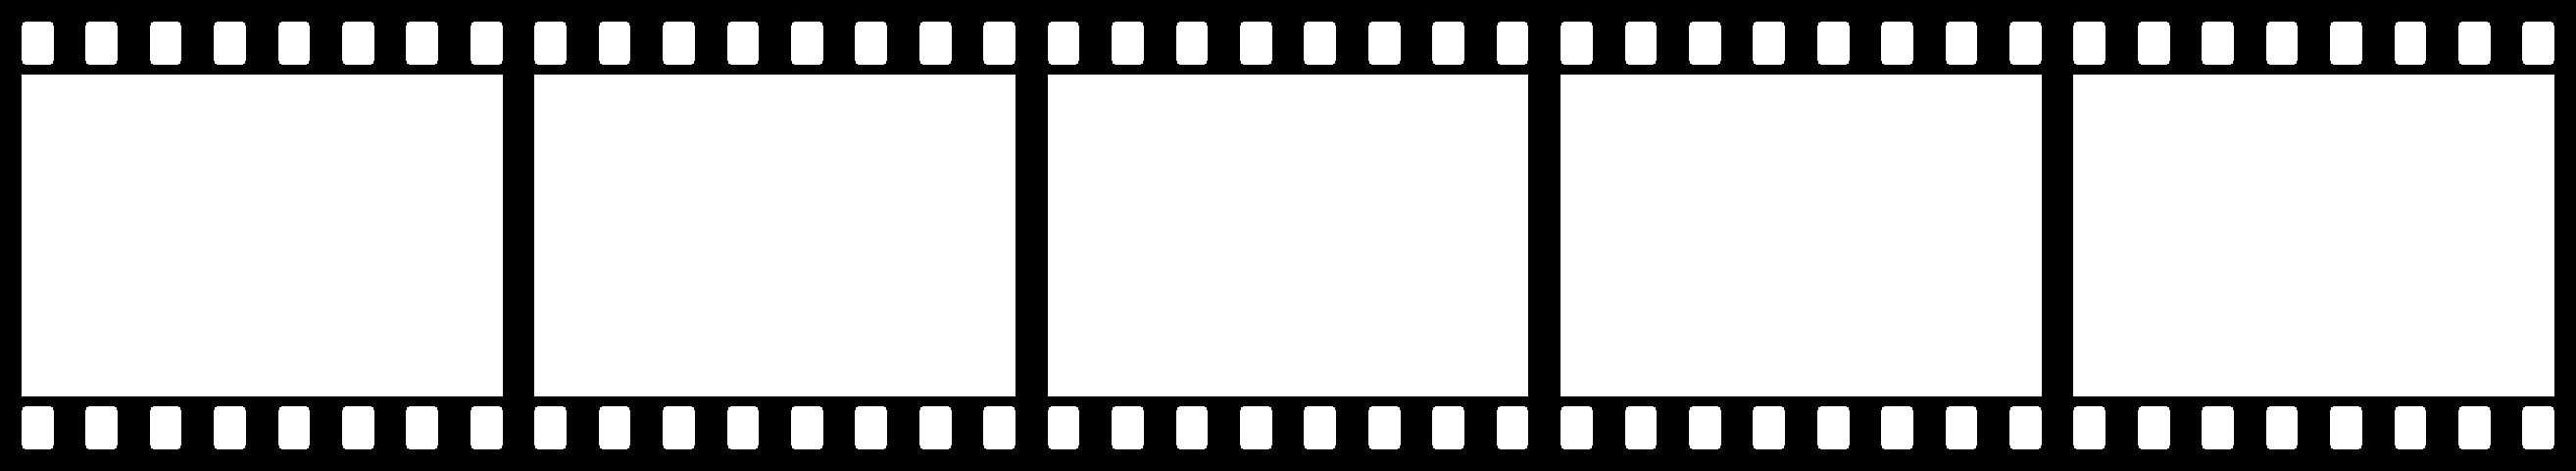 Filmstrip Png Available In Different Size image #33800